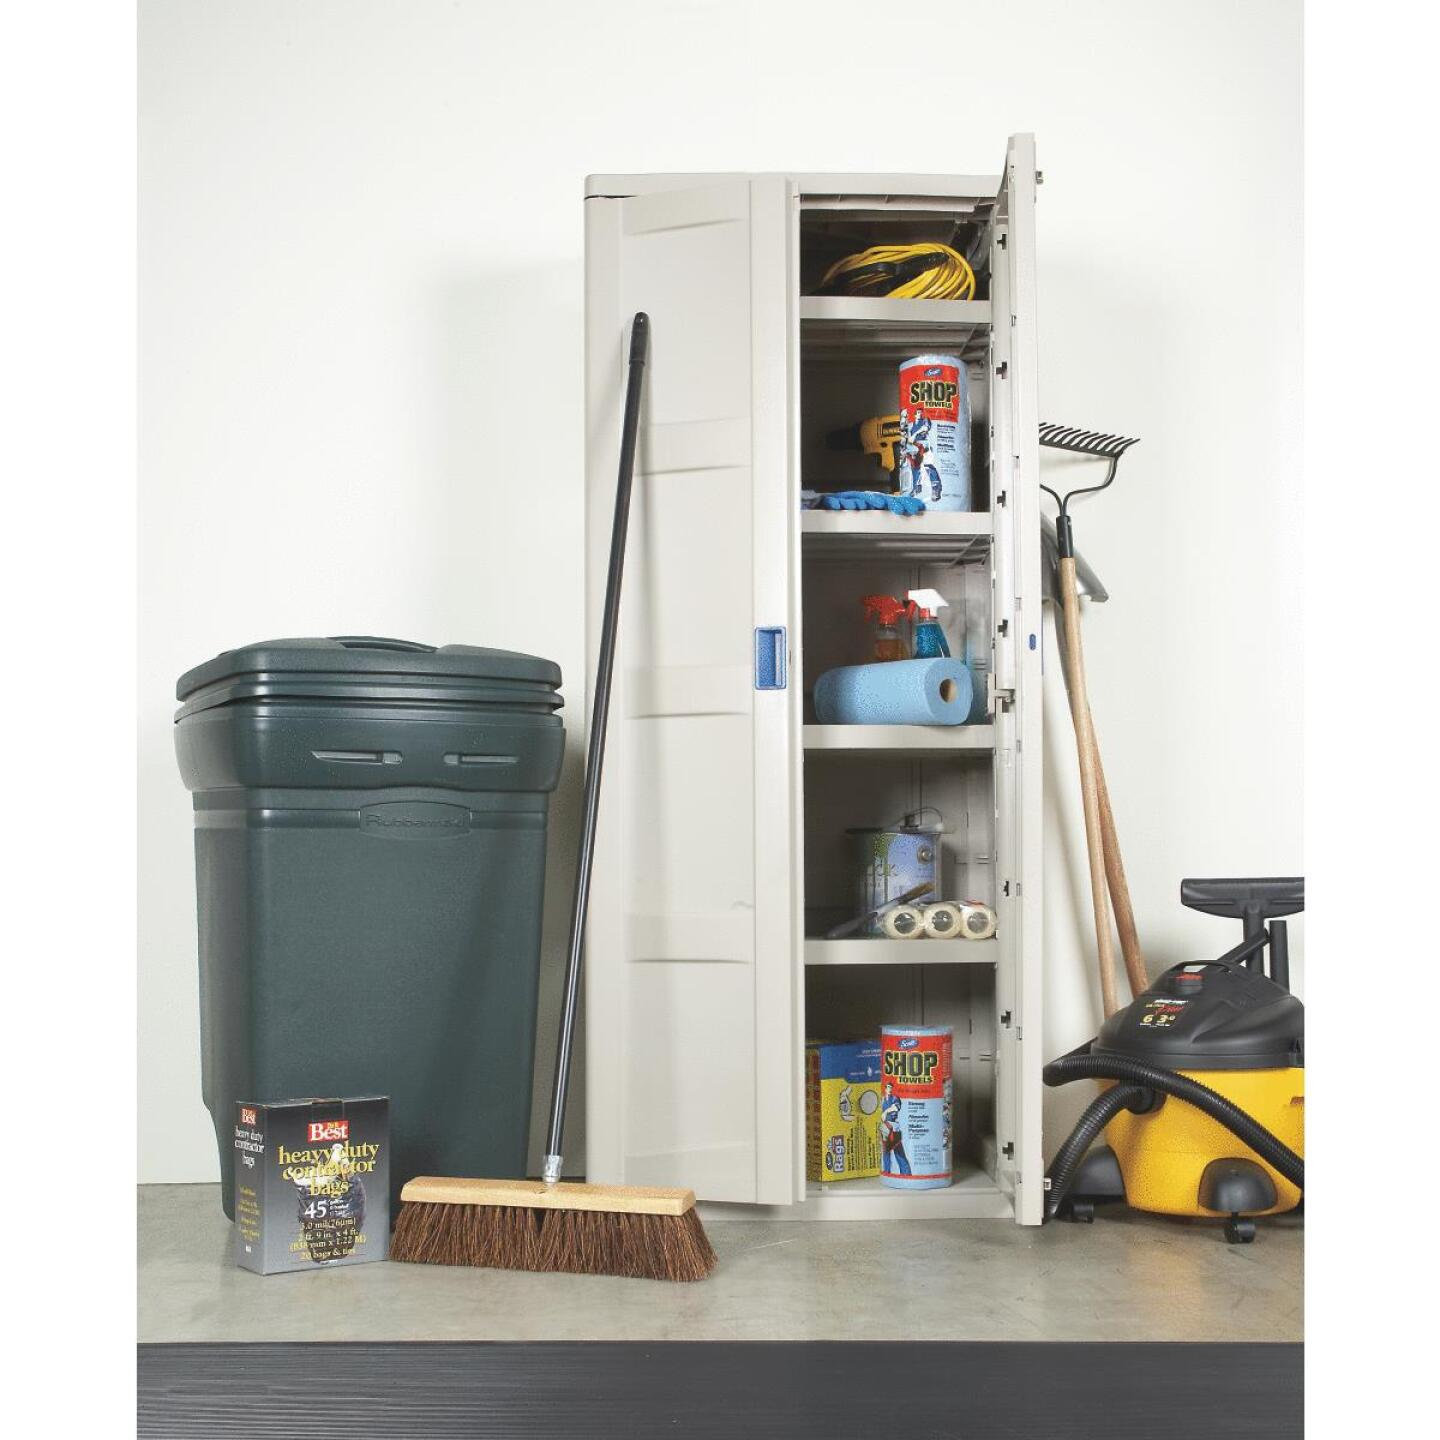 Rubbermaid 45 Gal. Green Wheeled Trash Can with Lid Image 4